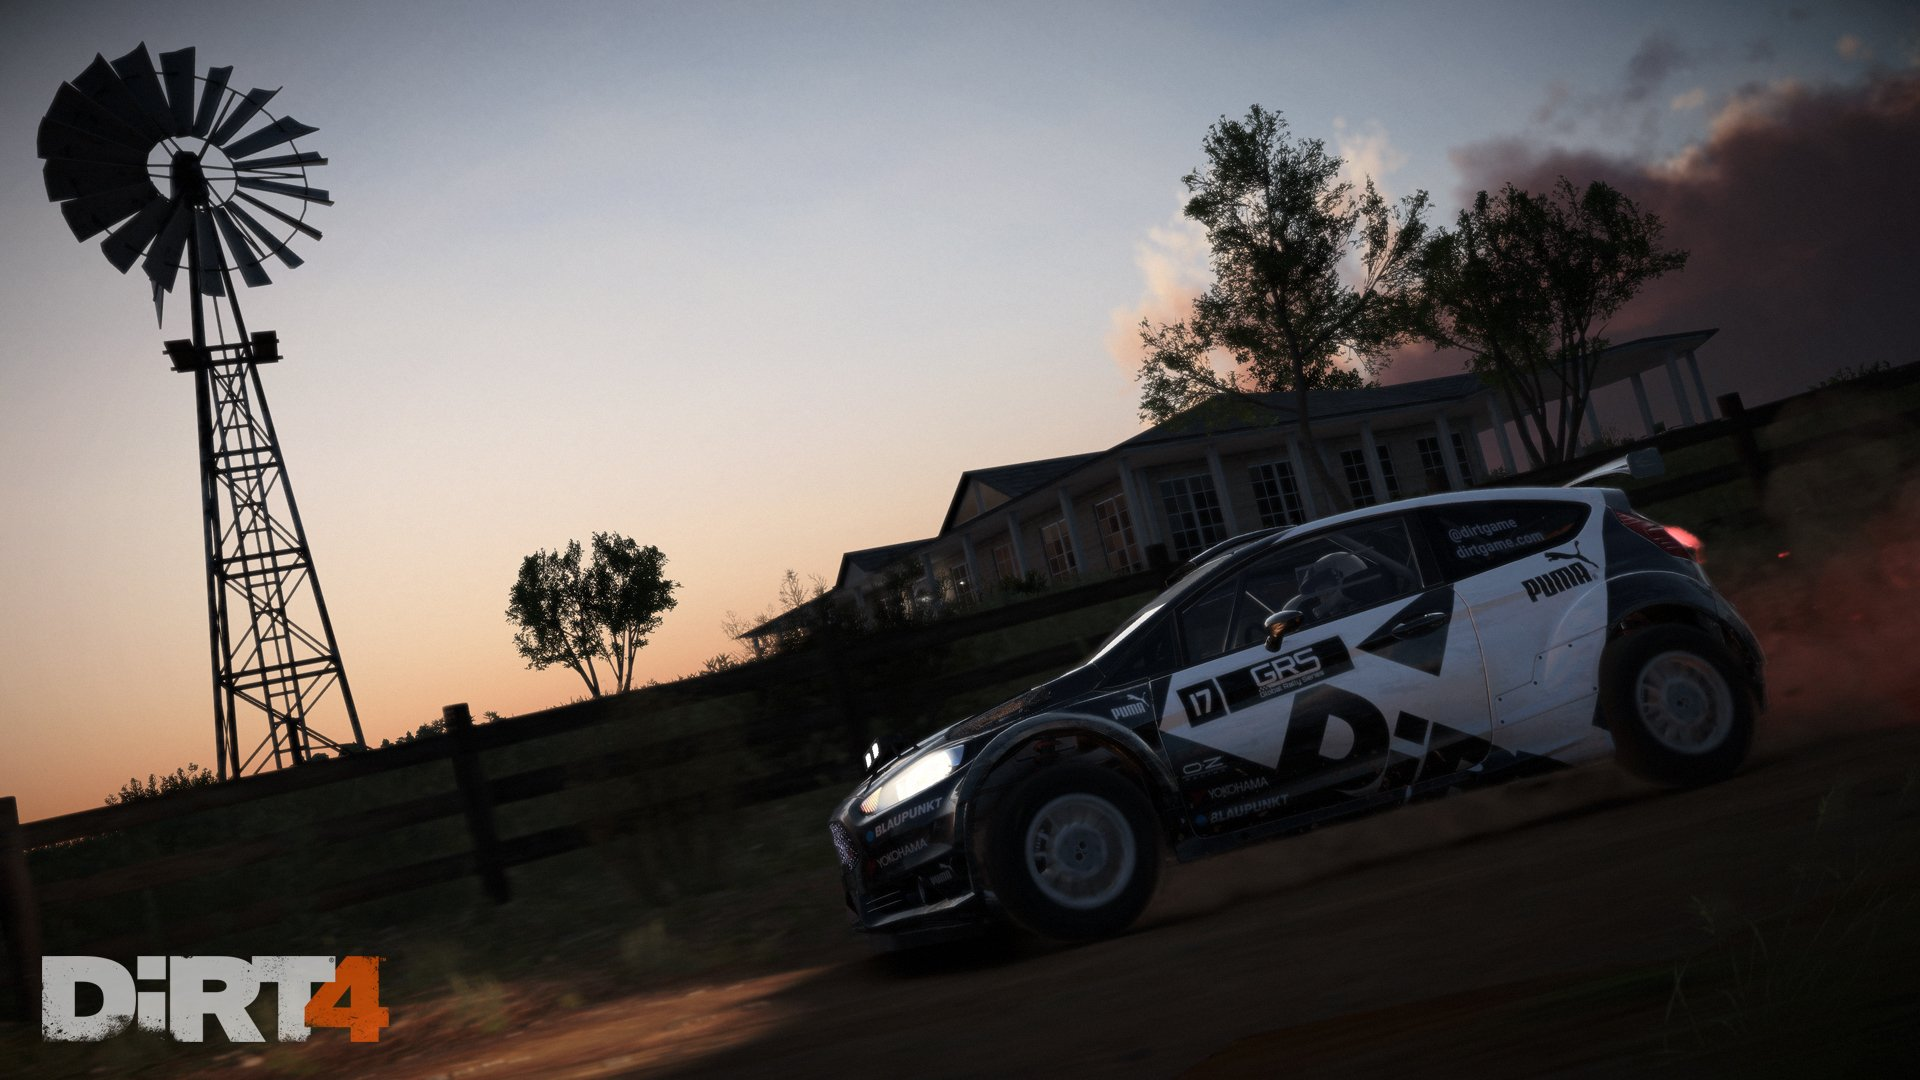 download dirt 4 hd wallpapers read games reviews play. Black Bedroom Furniture Sets. Home Design Ideas